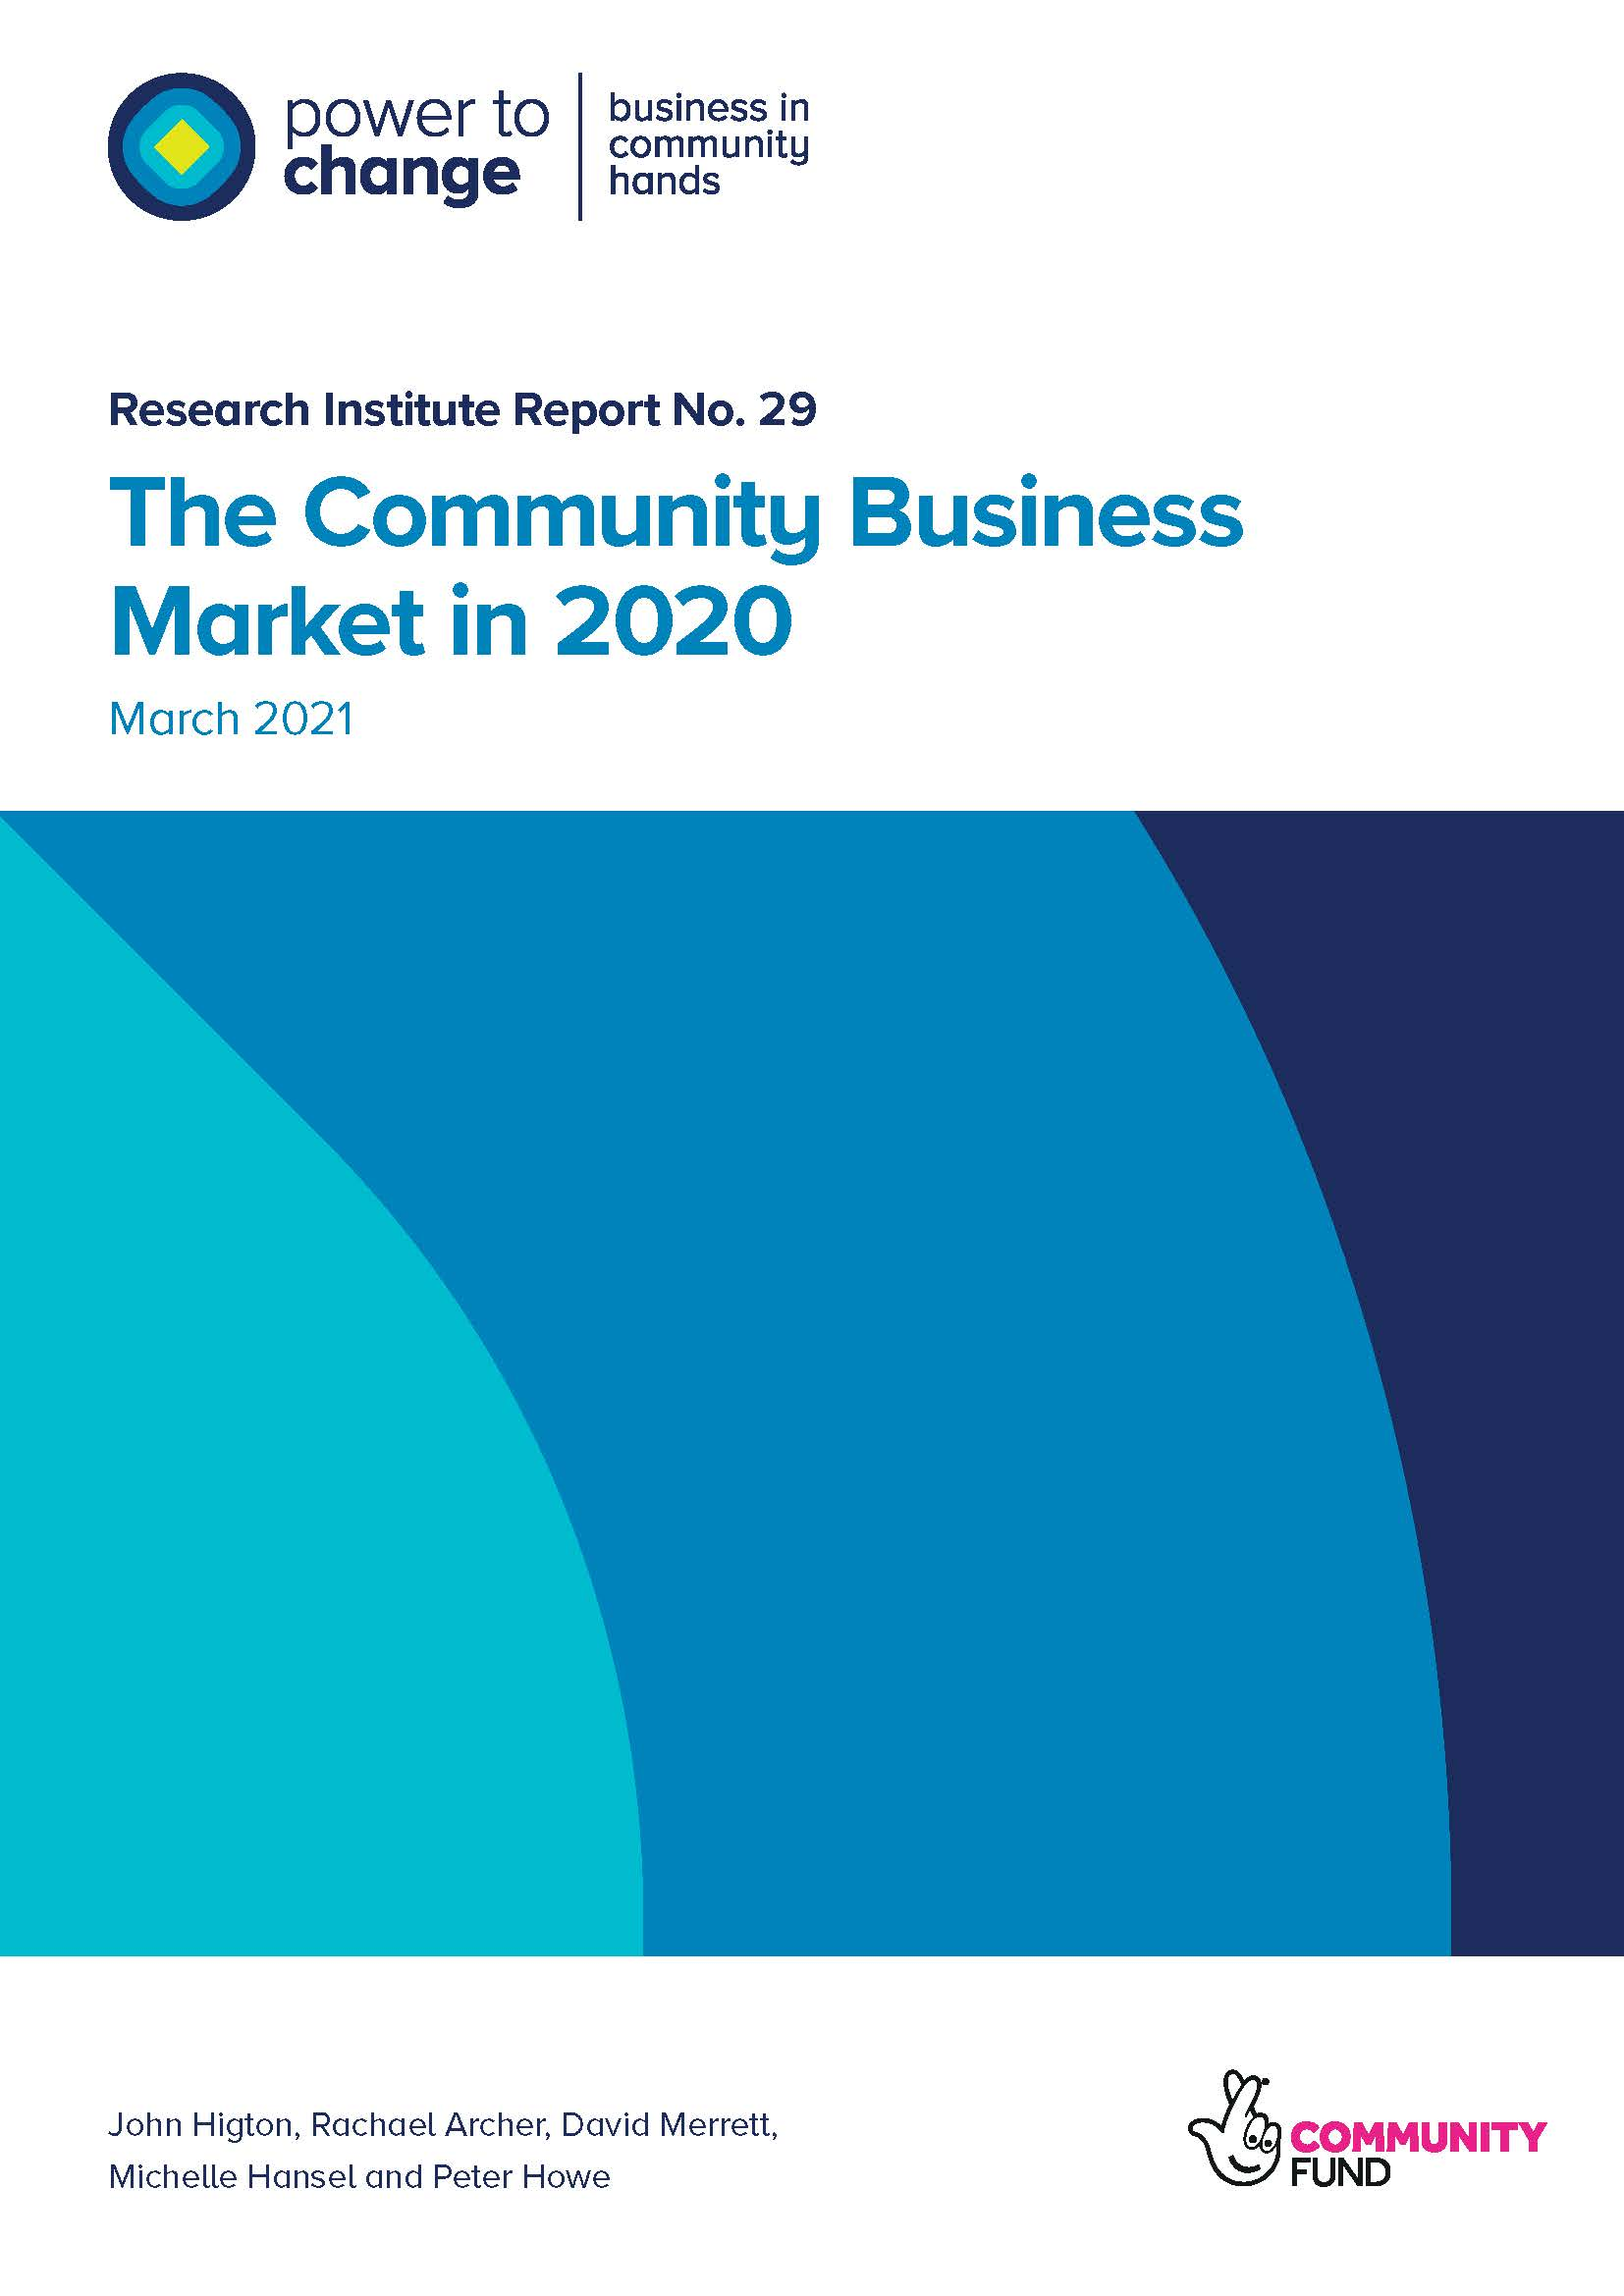 The Community Business Market in 2020